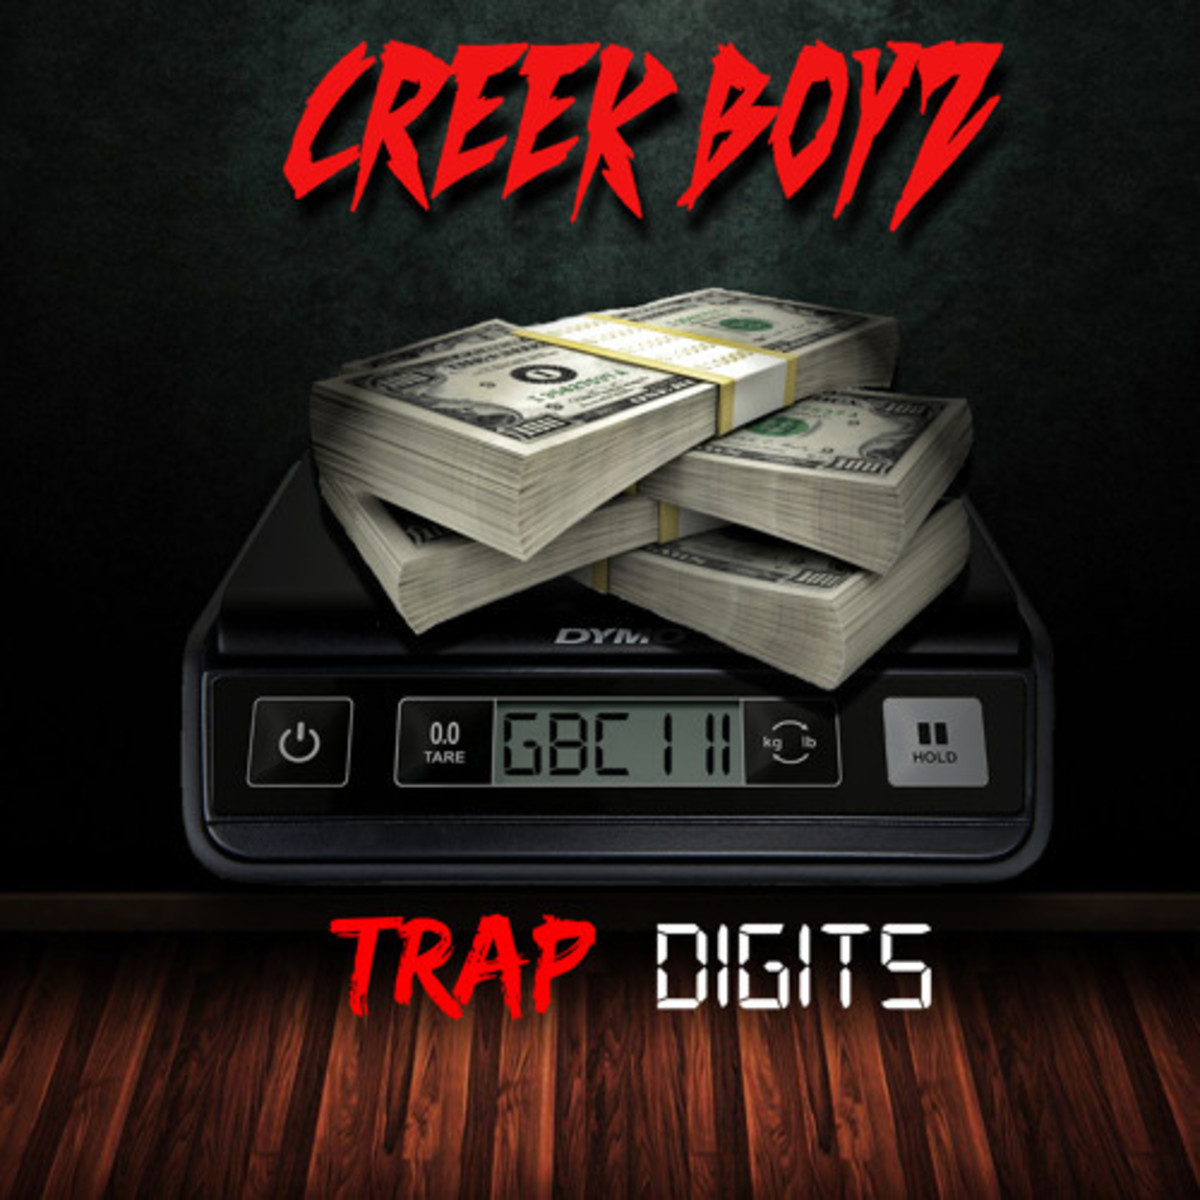 creek-boyz-trap-digits.jpg